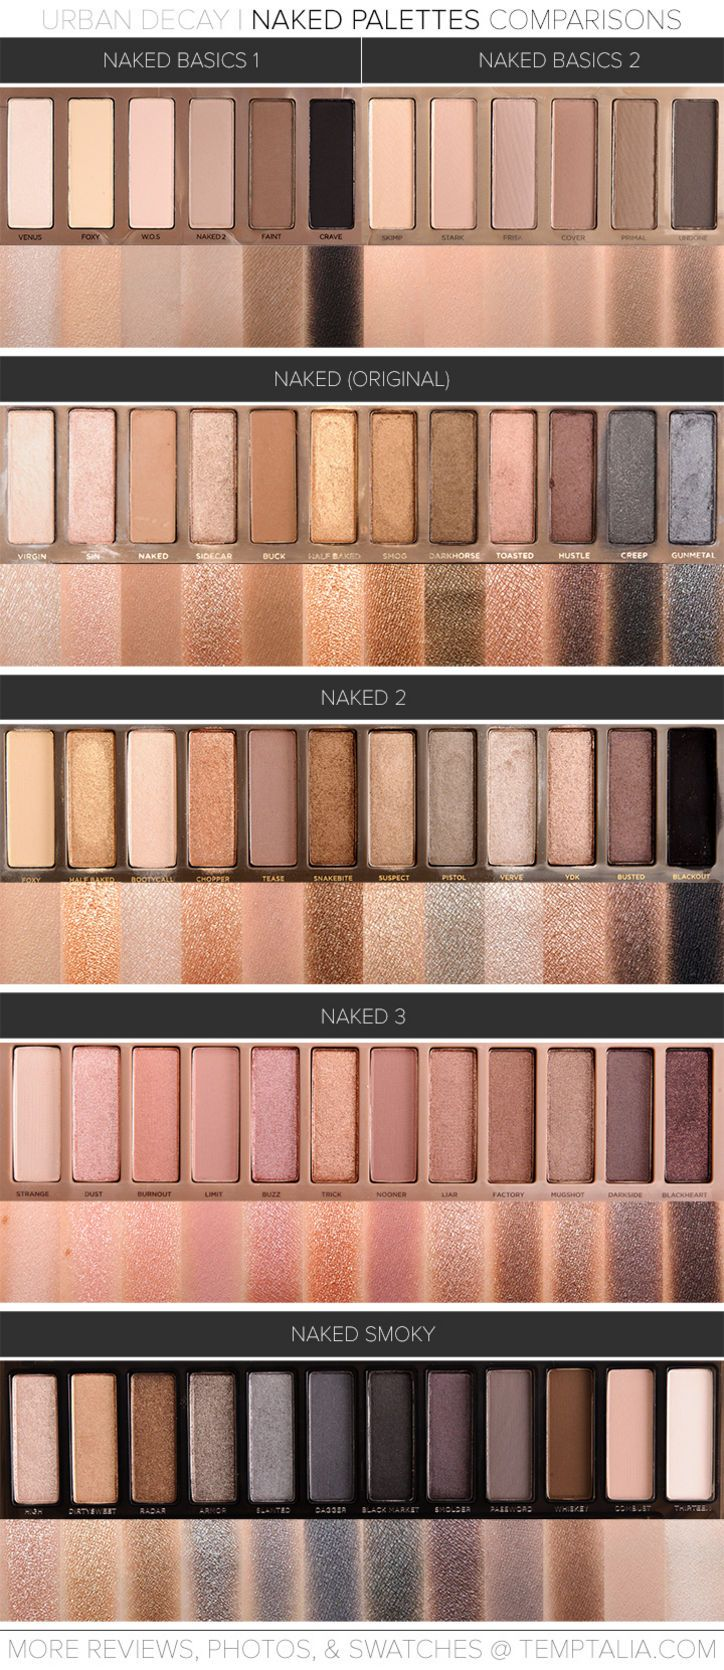 Urban Decay Naked Palette Swatches + Comparisons, can't wait for the Smoky !